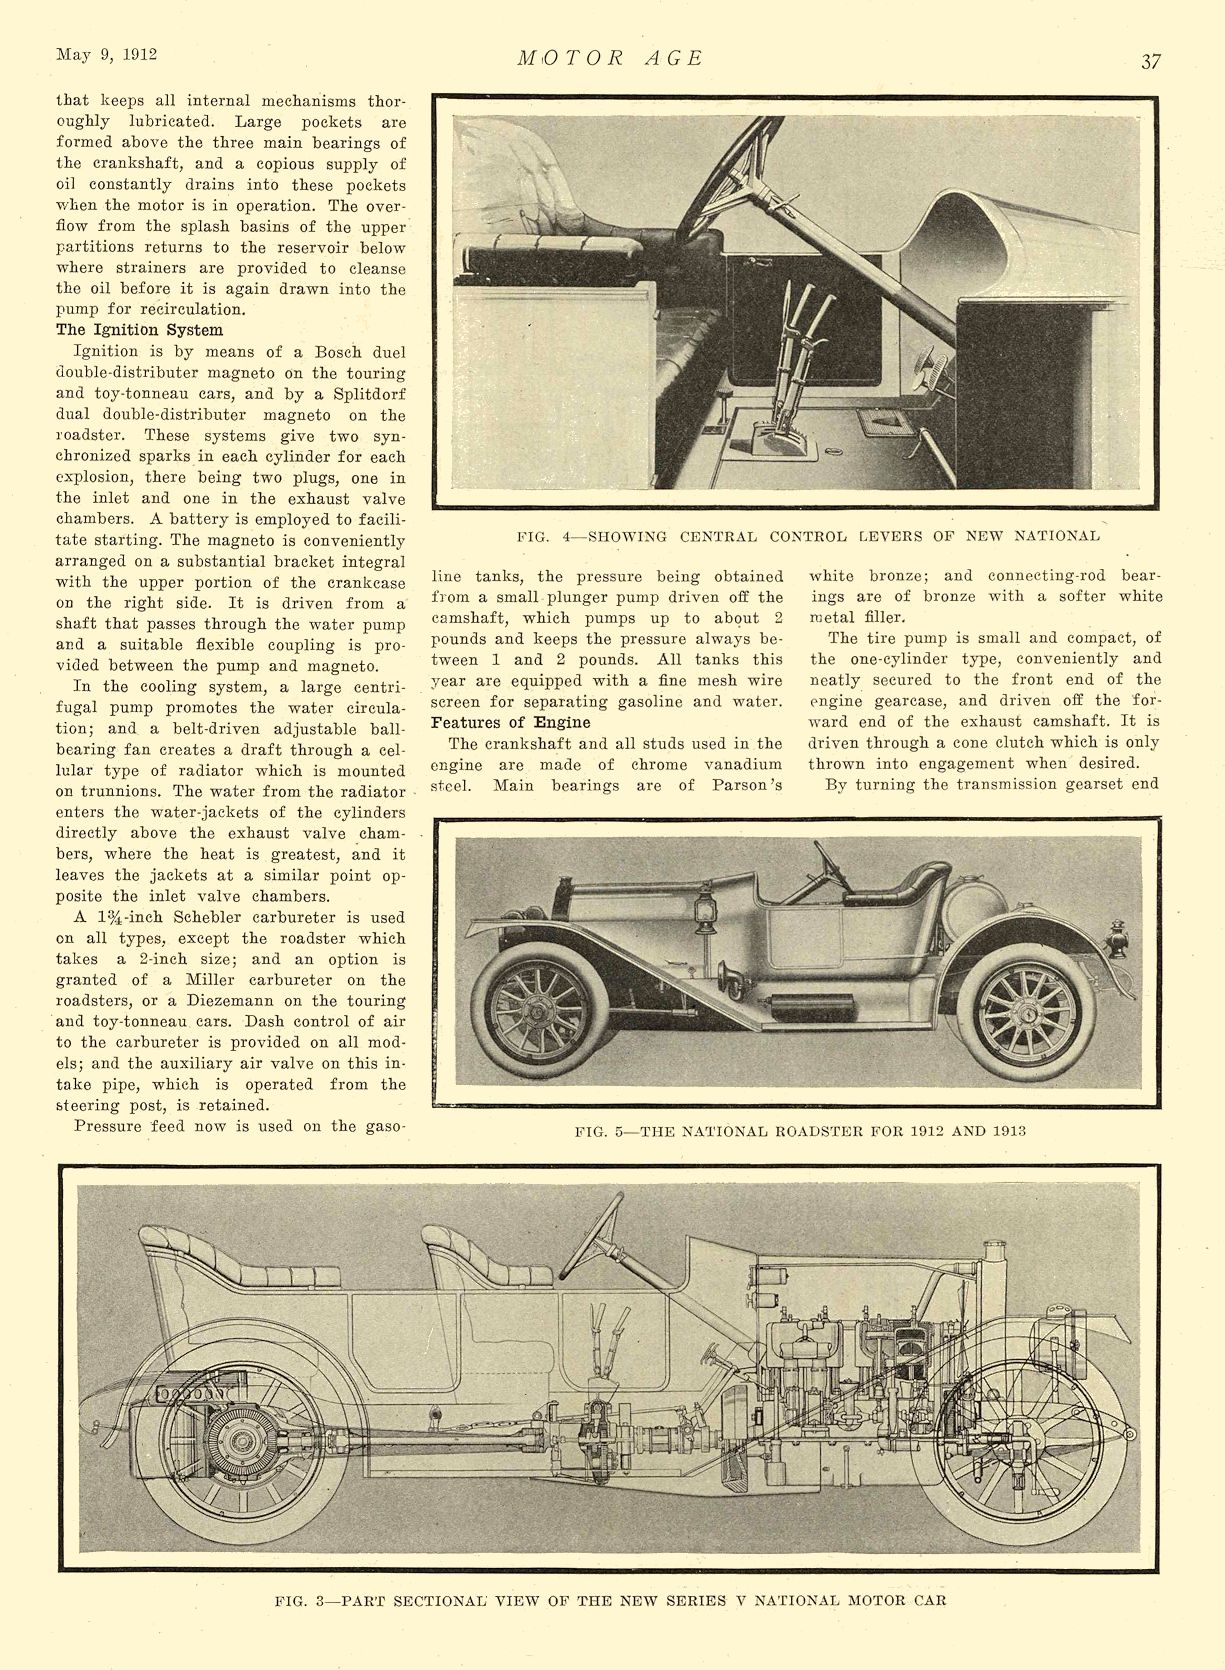 1912 5 9 NATIONAL Article National Puts Series V on 1913 Market National Motor Vehicle Co. Indianapolis, IND MOTOR AGE May 9, 1912 8.5″x12″ page 37